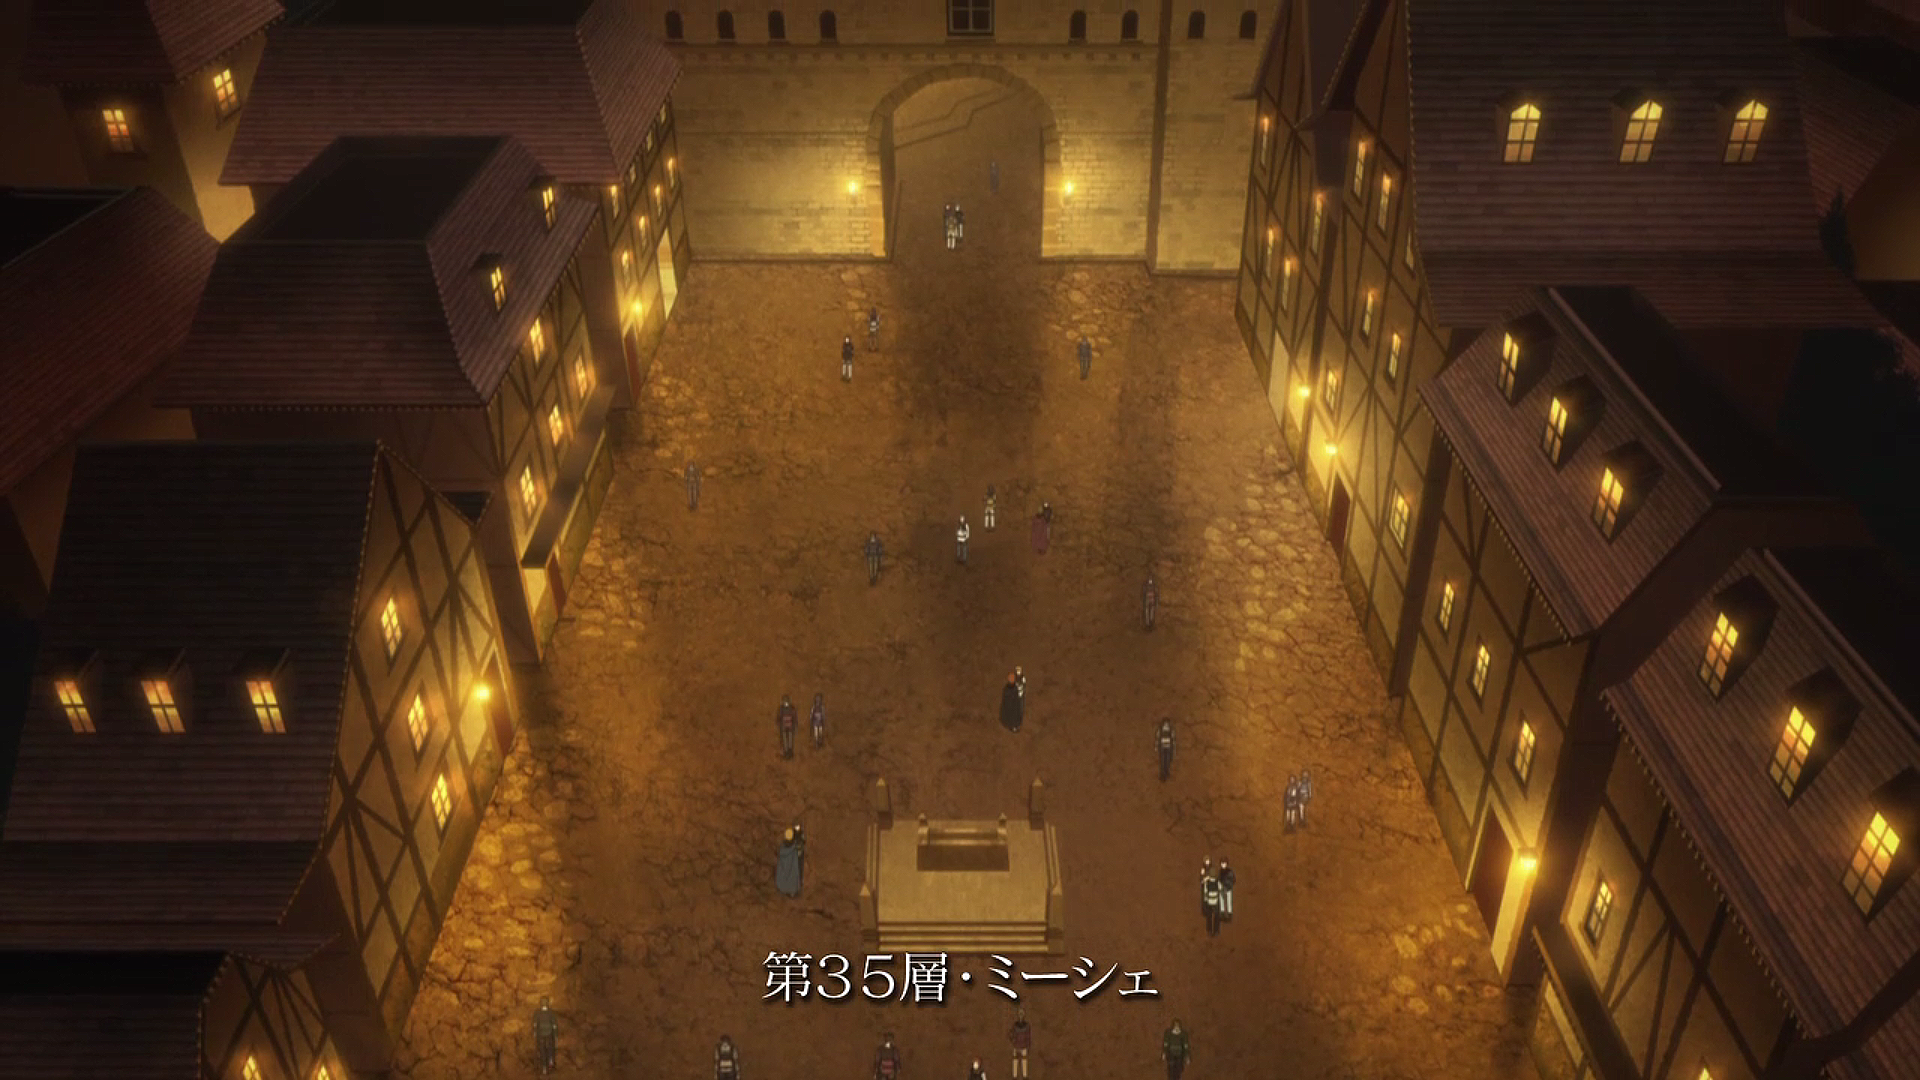 35th floor aincrad sword art online wiki fandom for Floor 100 boss sao